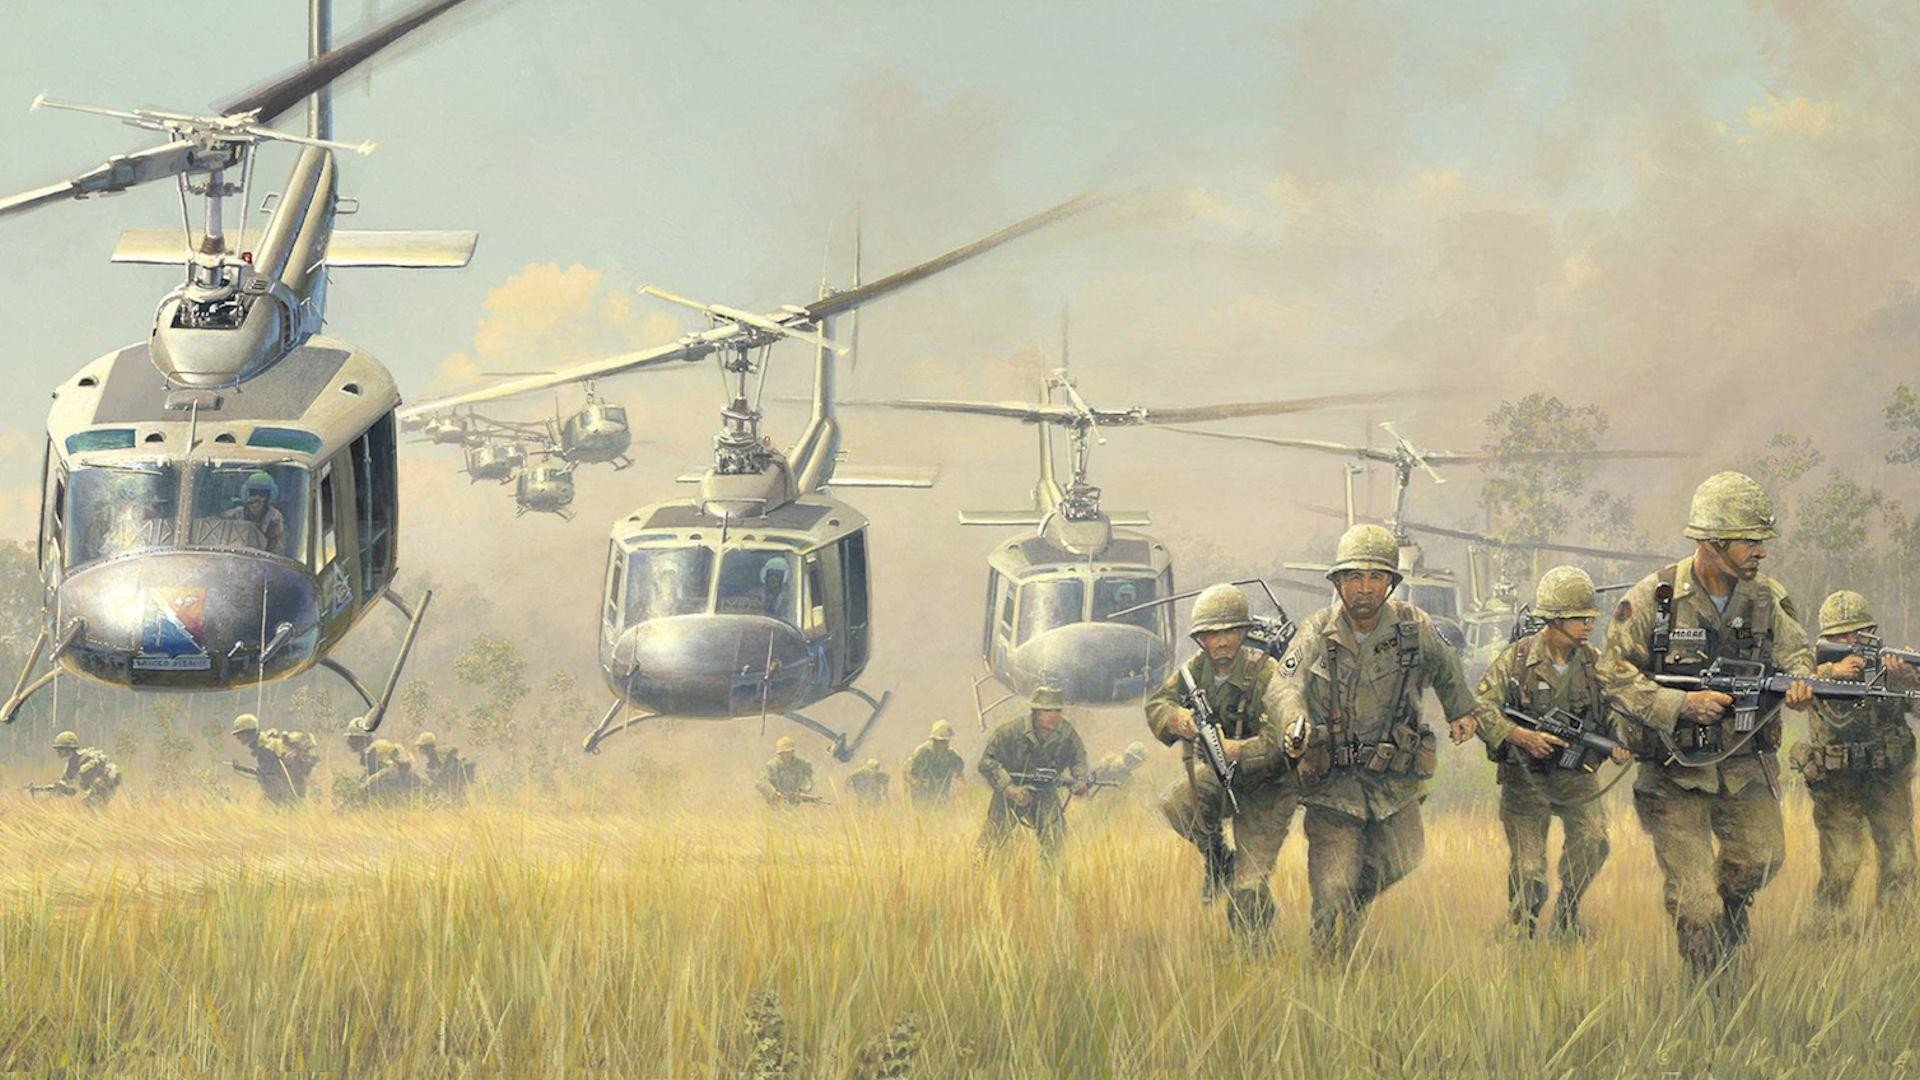 Res: 1920x1080, Wallpaper vietnam, bell, uh-1, iroquois, huey, helicopters, war